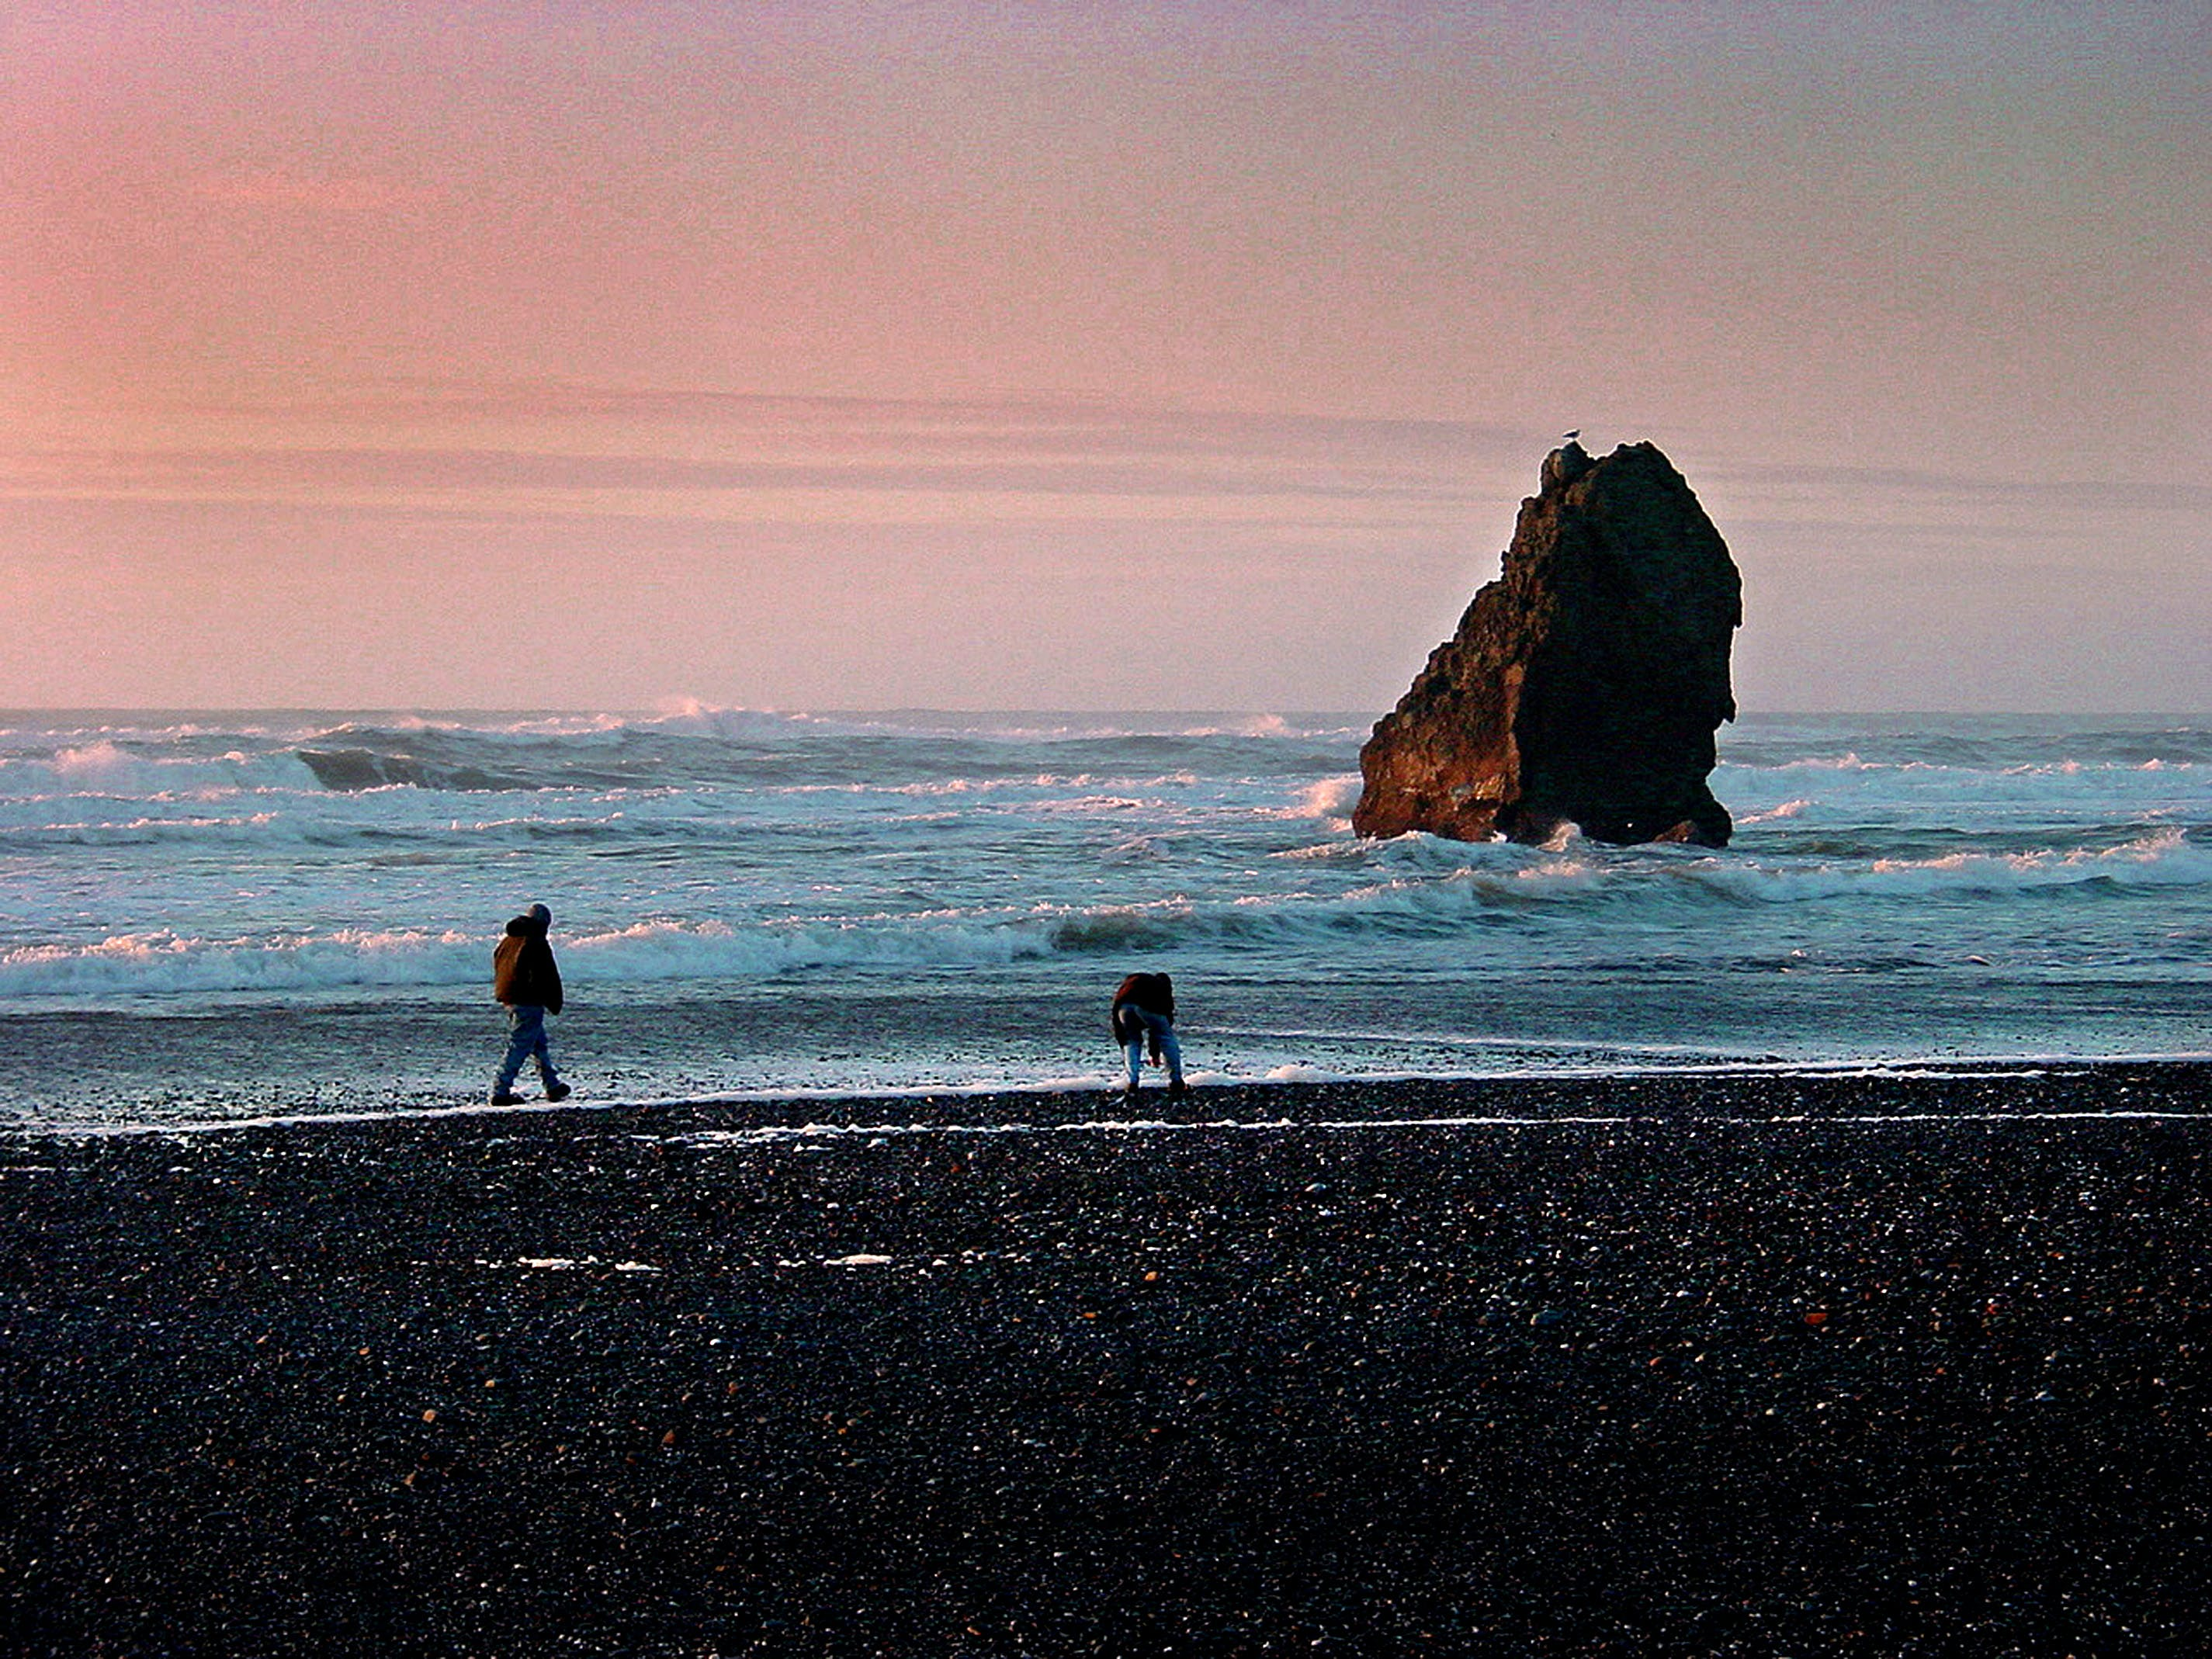 Two People at the Seashore during Dawn